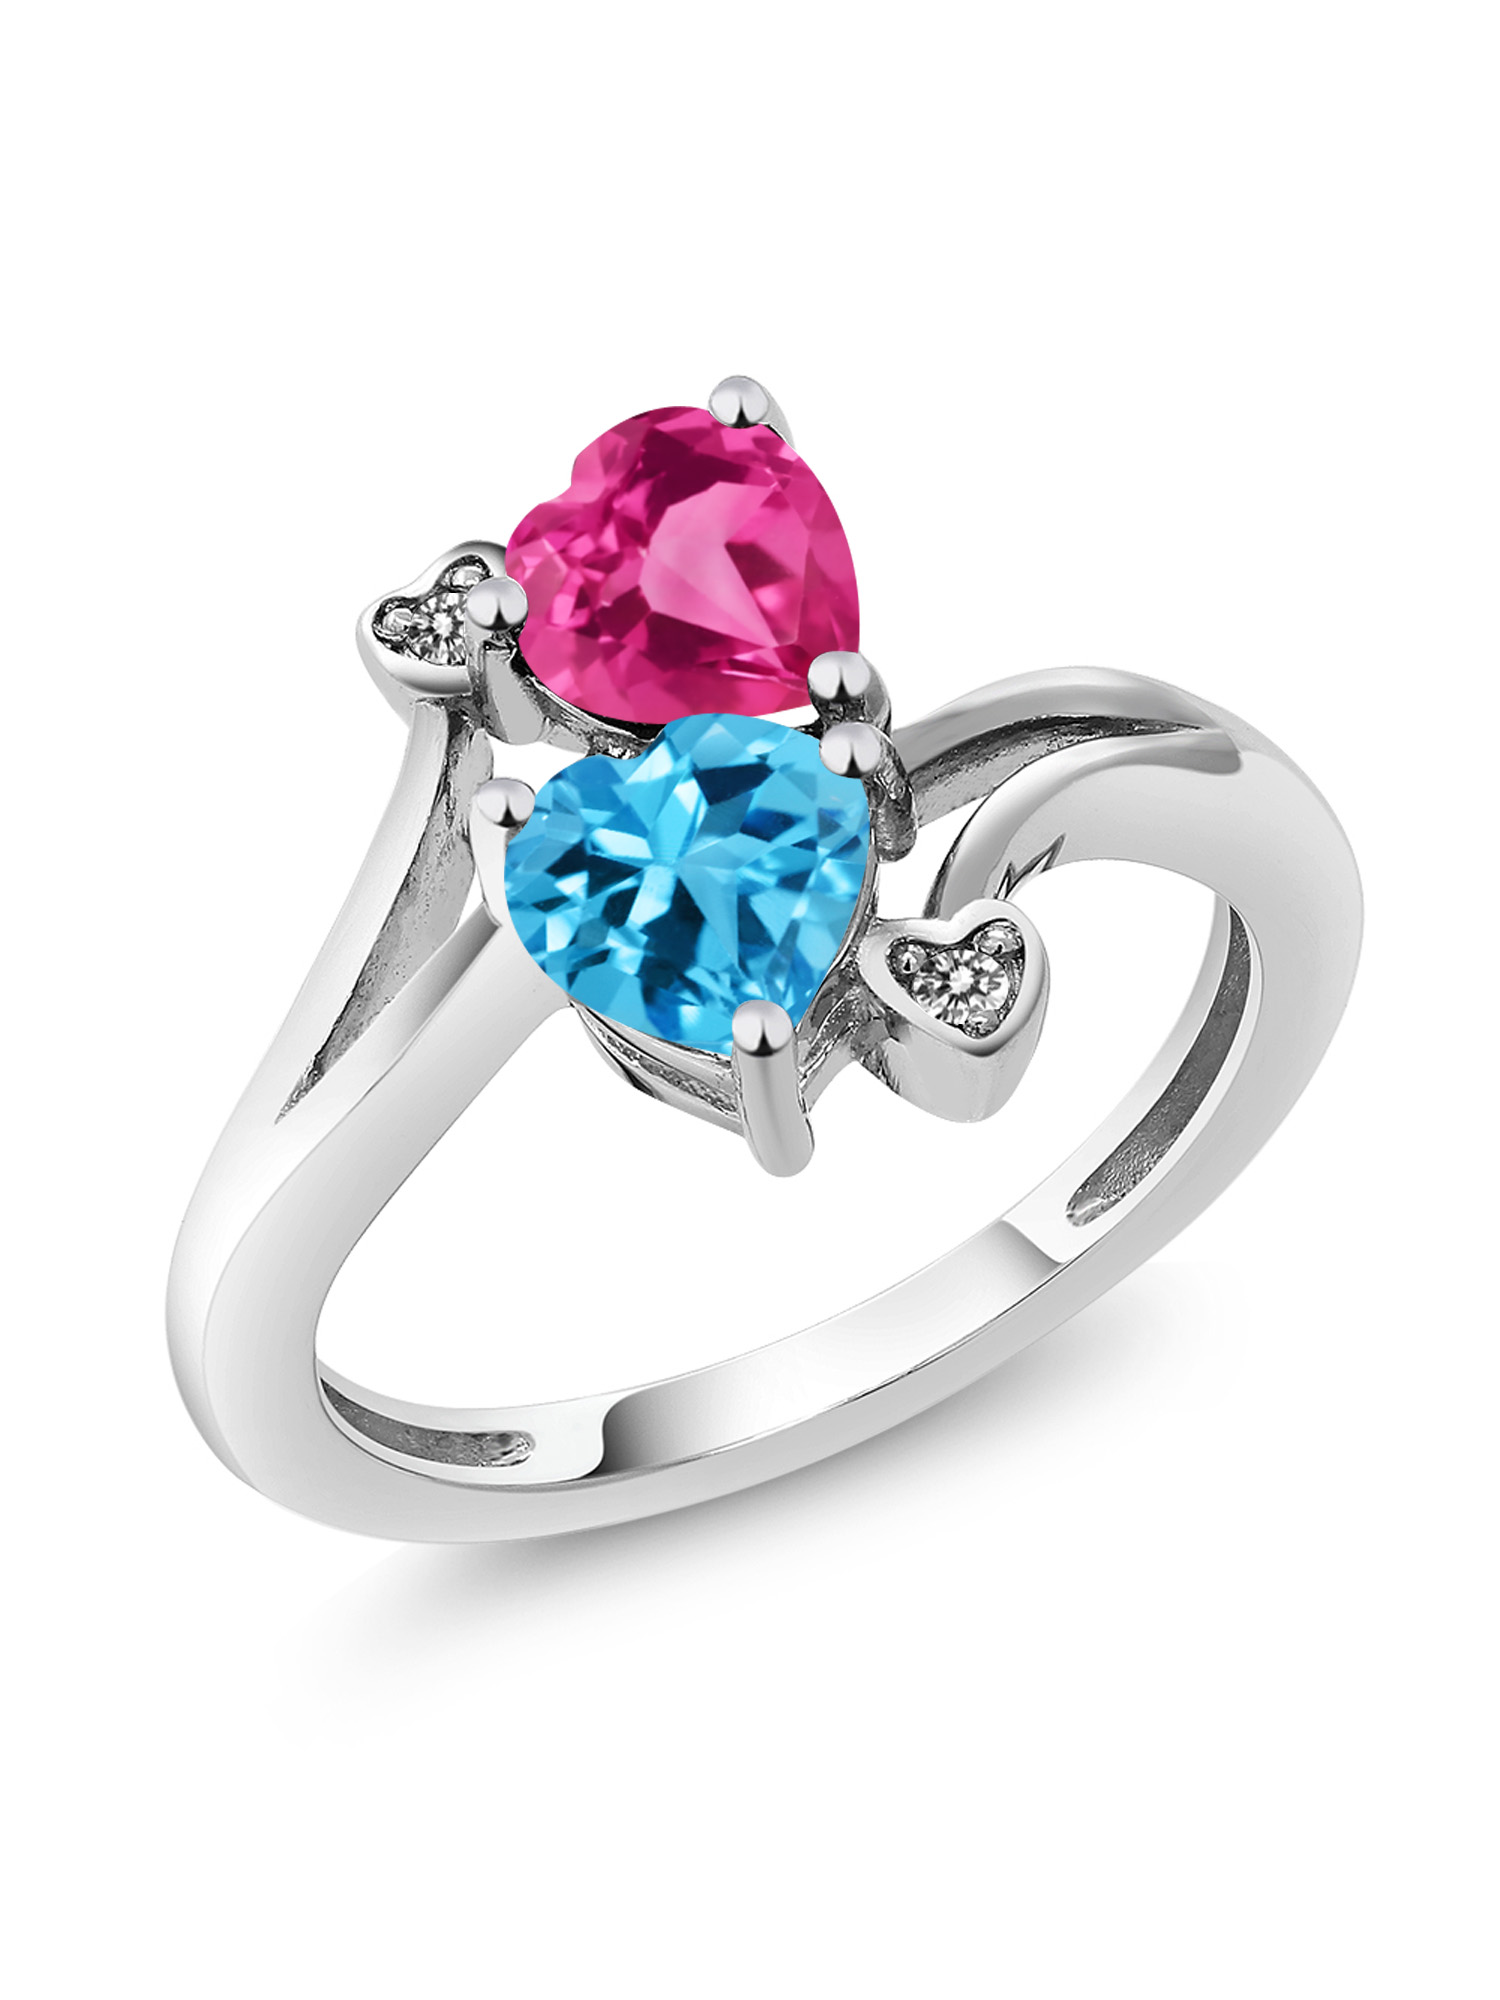 1.78 Ct Heart Shape Swiss Blue Topaz Pink Created Sapphire 10K White Gold Ring by